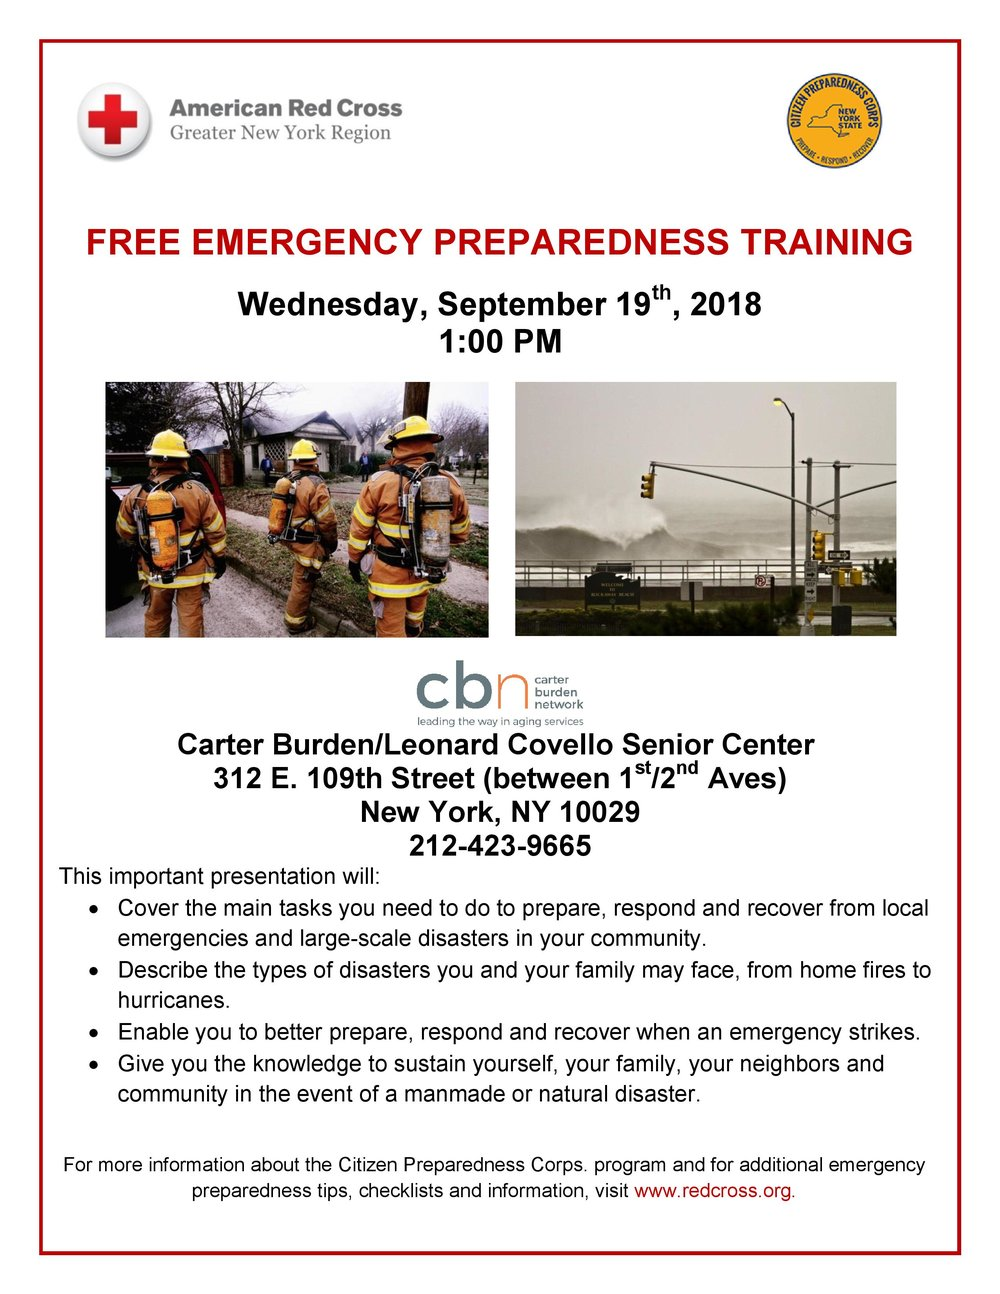 CPC Emergency Preparedness Presentation Promotional Flyer-page-001.jpg